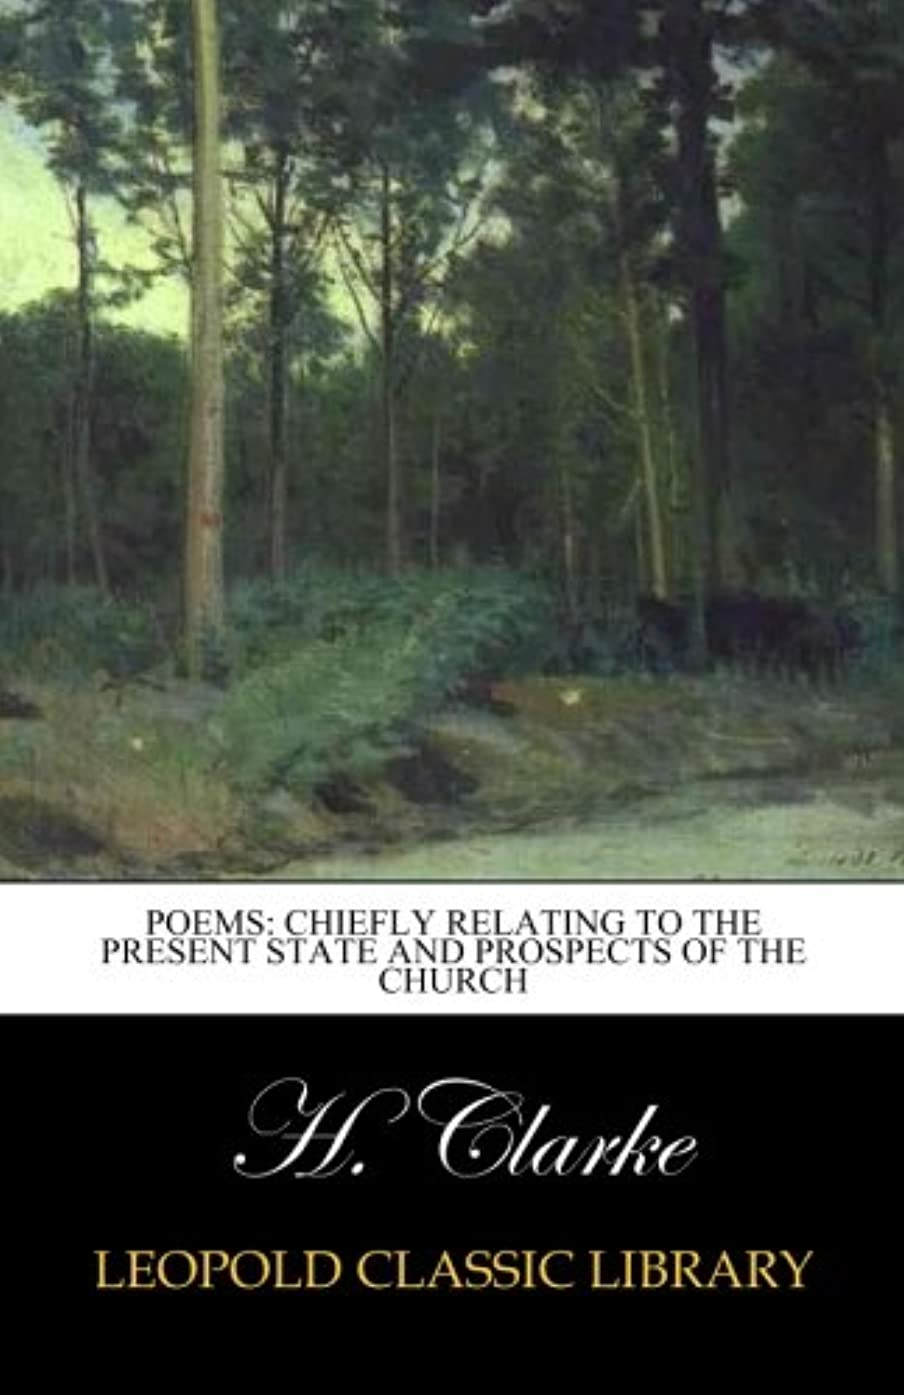 魅力的であることへのアピールヘリコプター市の中心部Poems: chiefly relating to the present state and prospects of the Church